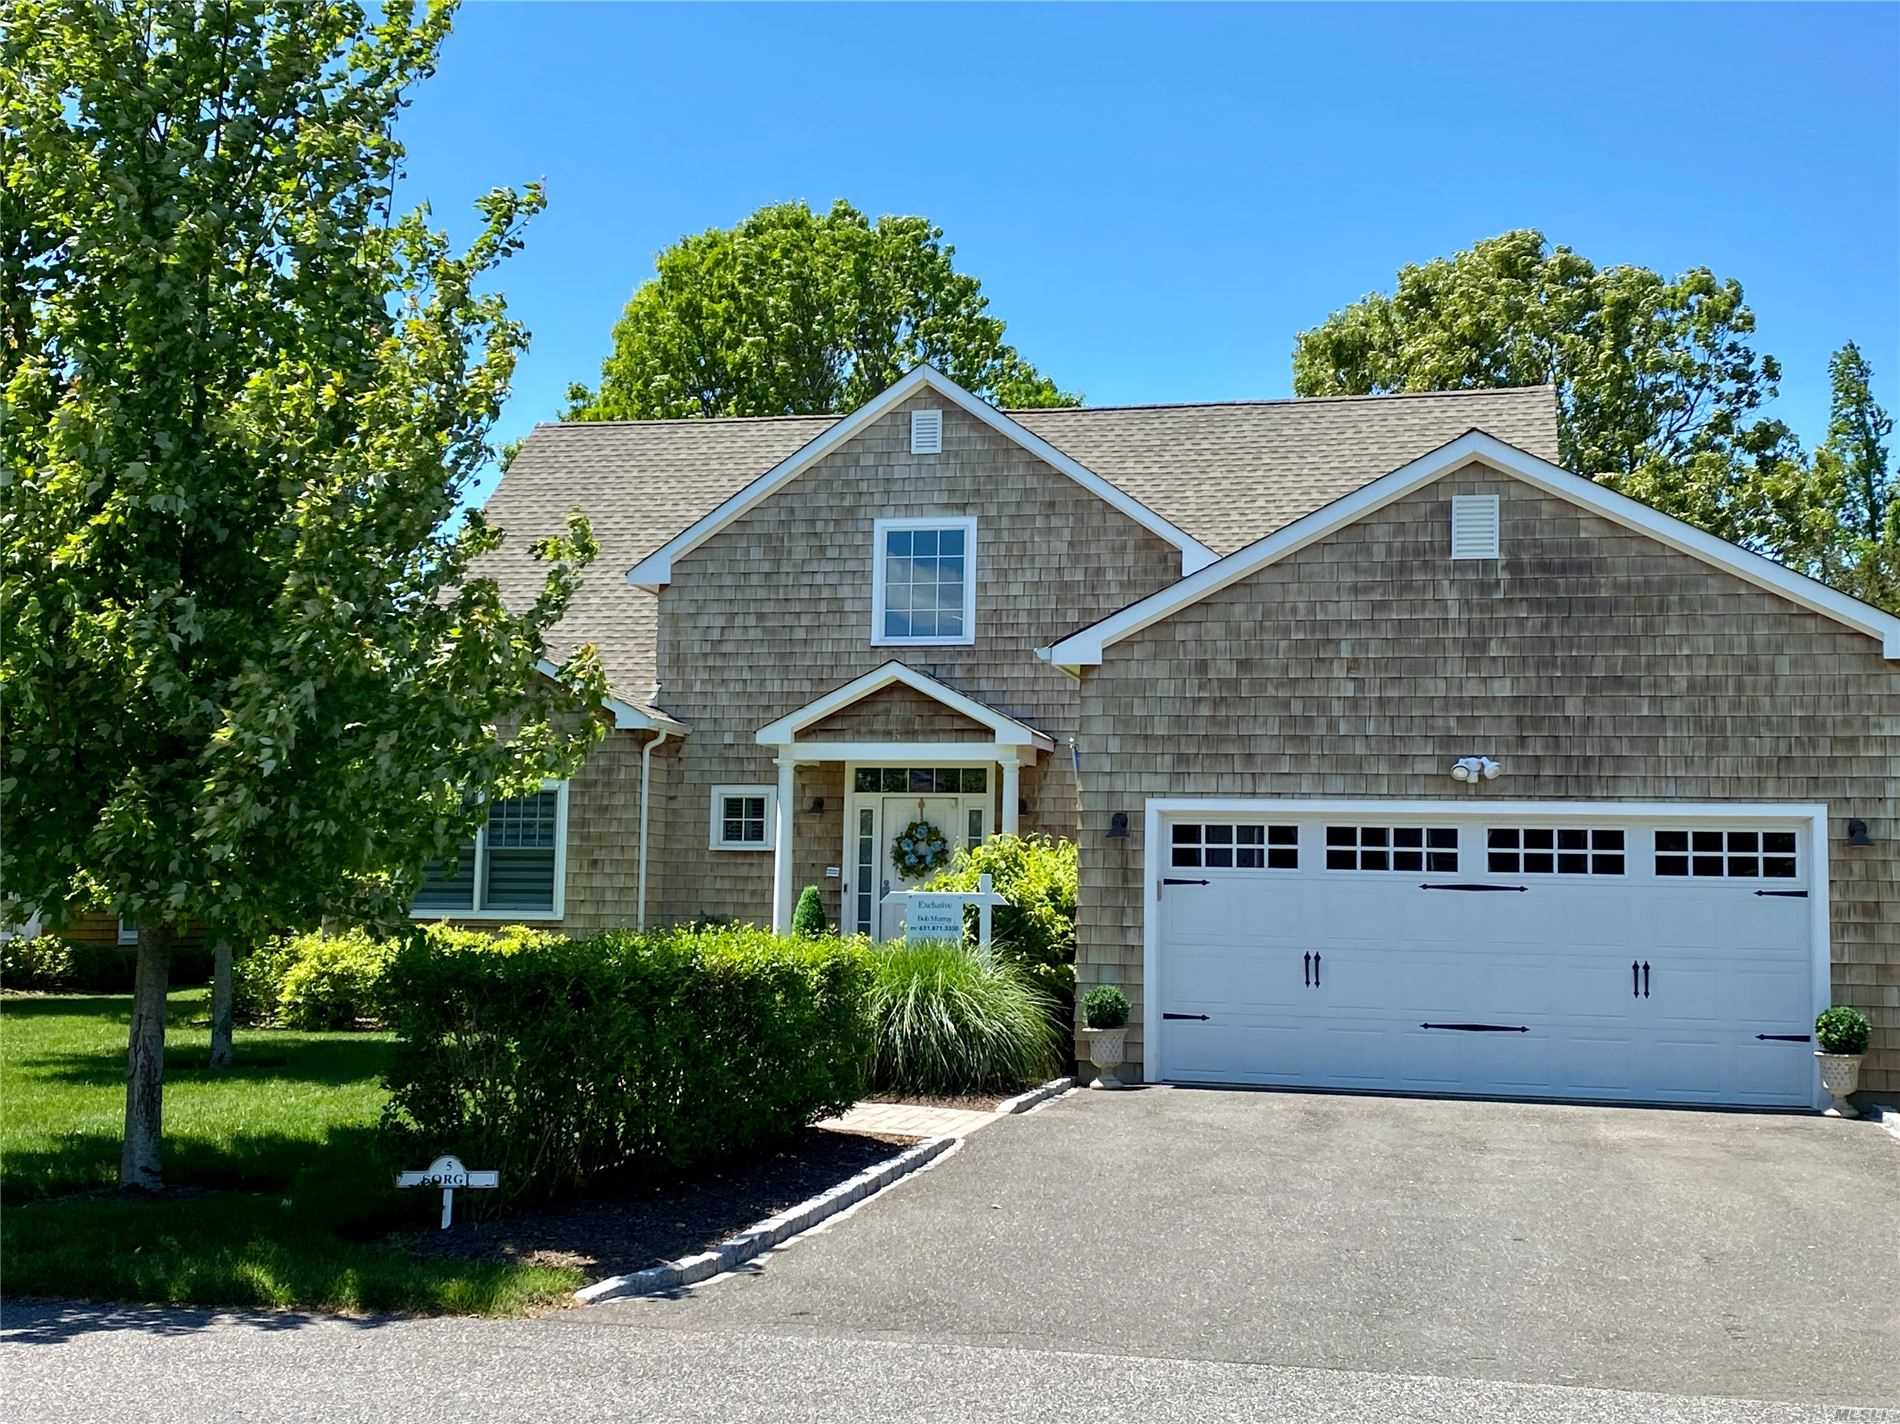 Photo of home for sale at 5 Jessups Landing Ct, Quogue NY